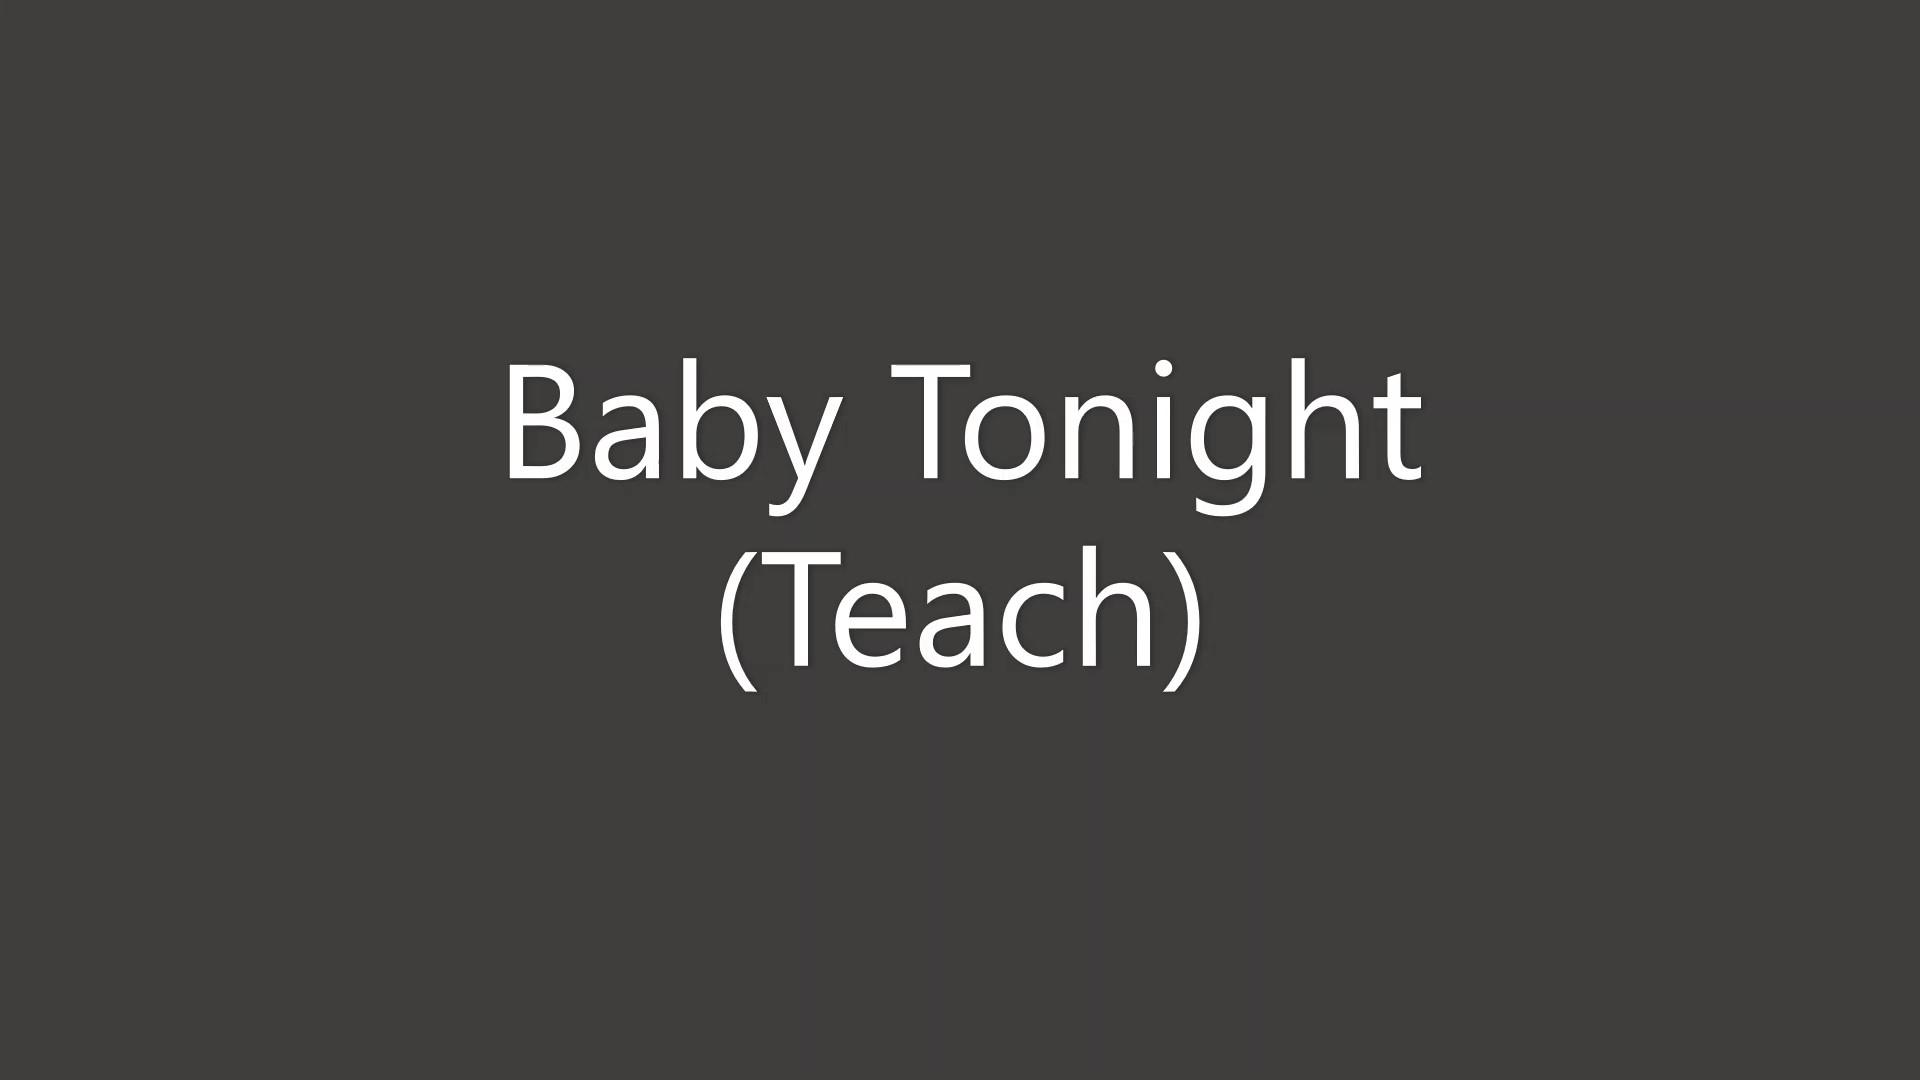 Baby Tonight Teach